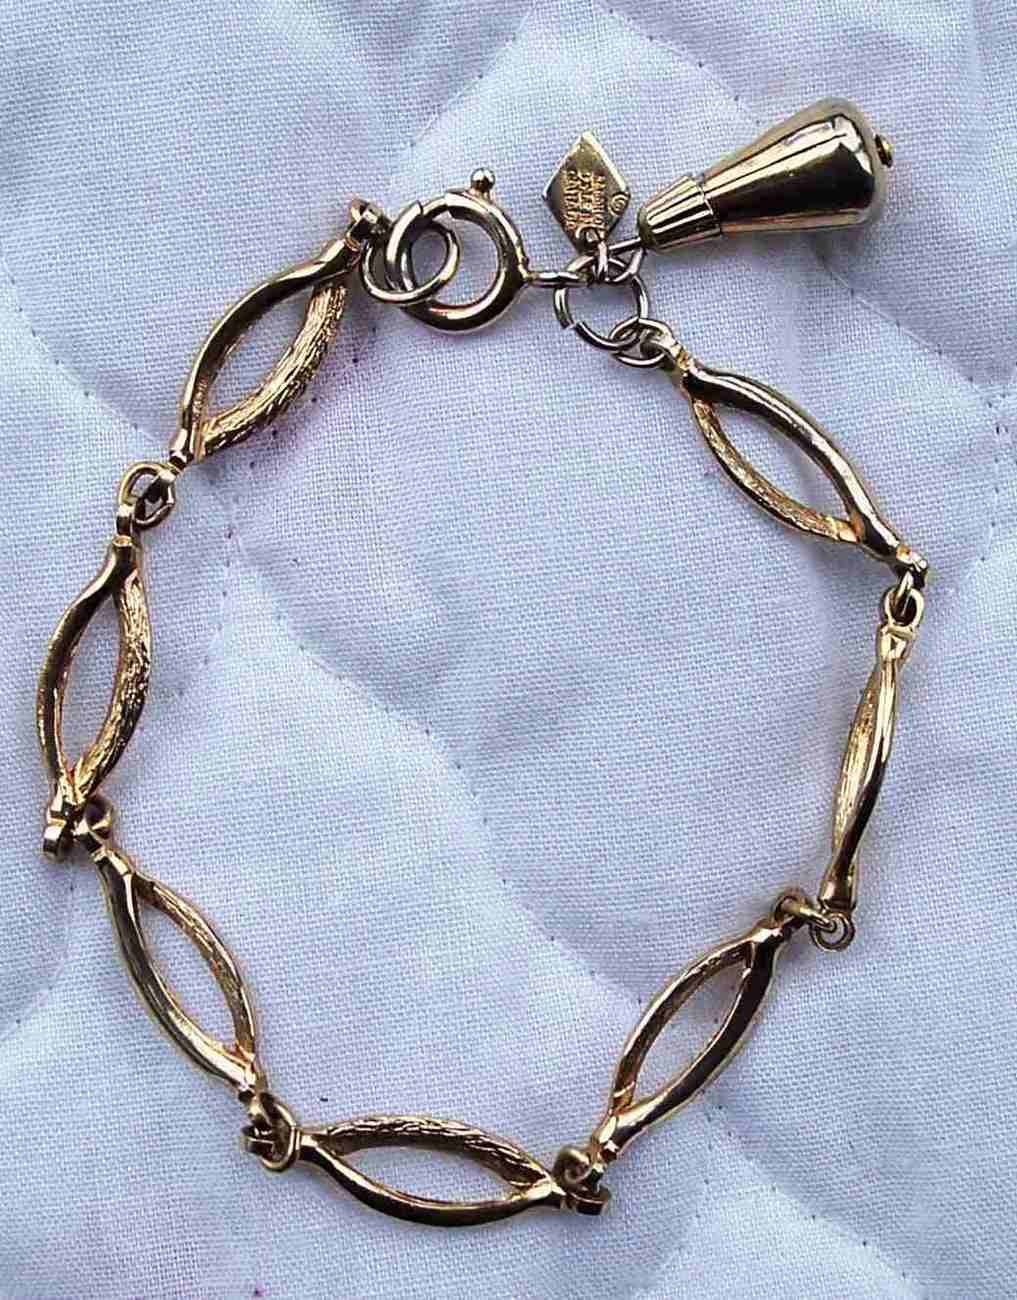 Vintage Sarah Coventry Gold Toned Bracelet Signed